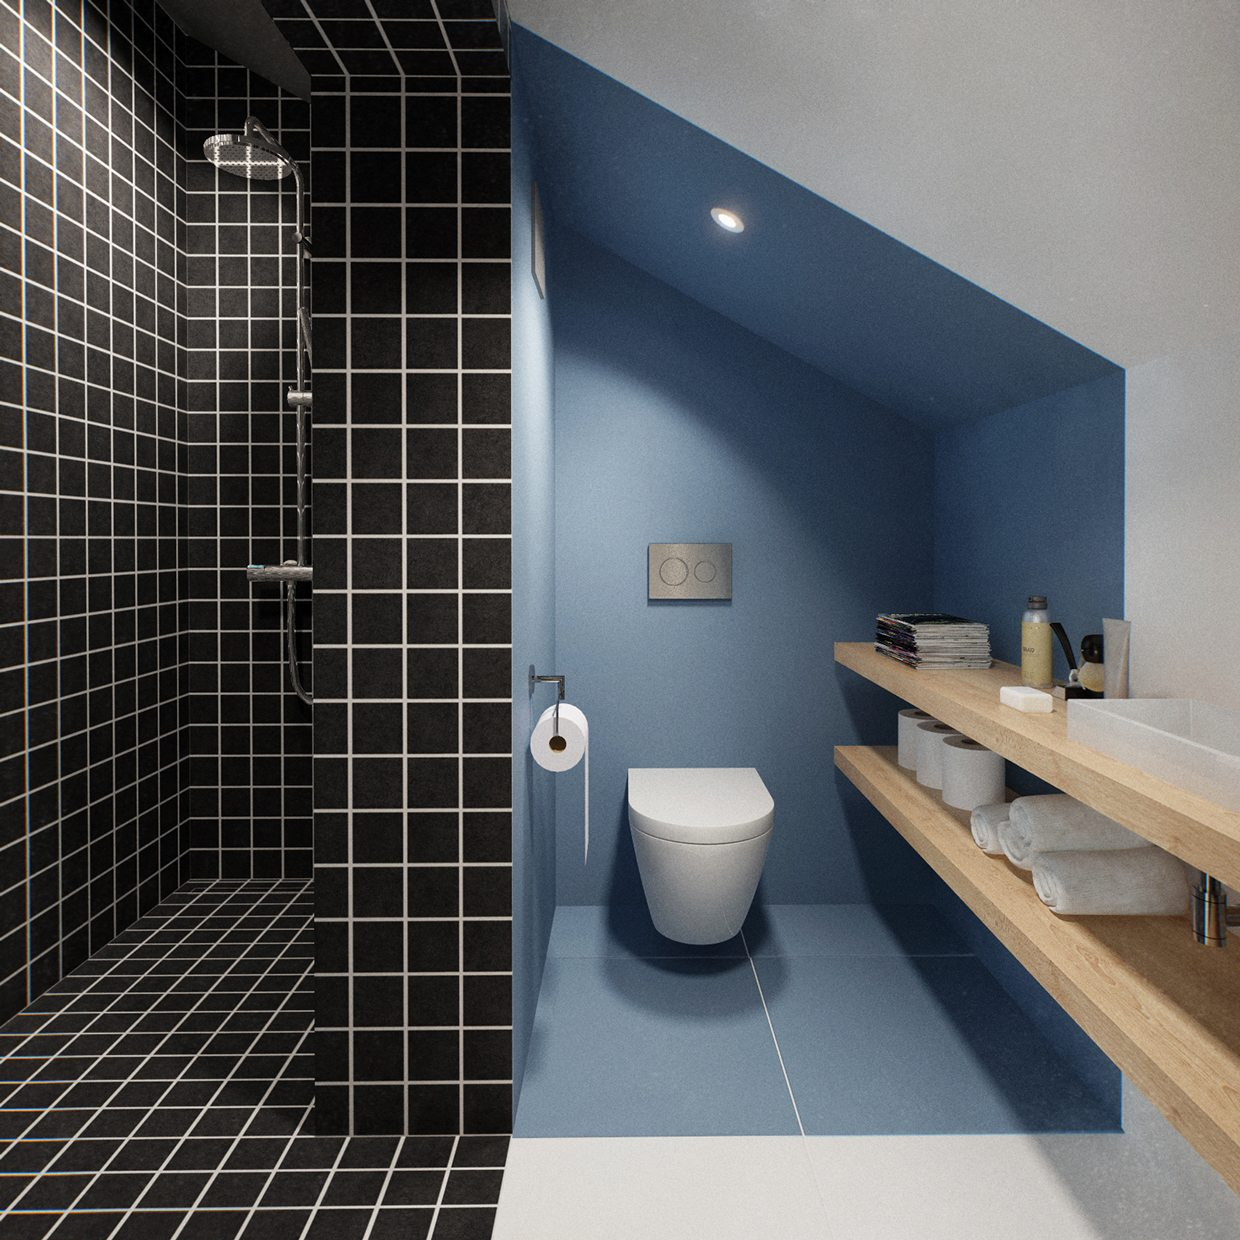 Black Tiles In Bathroom Ideas Part - 44: Like Architecture U0026 Interior Design? Follow Us..